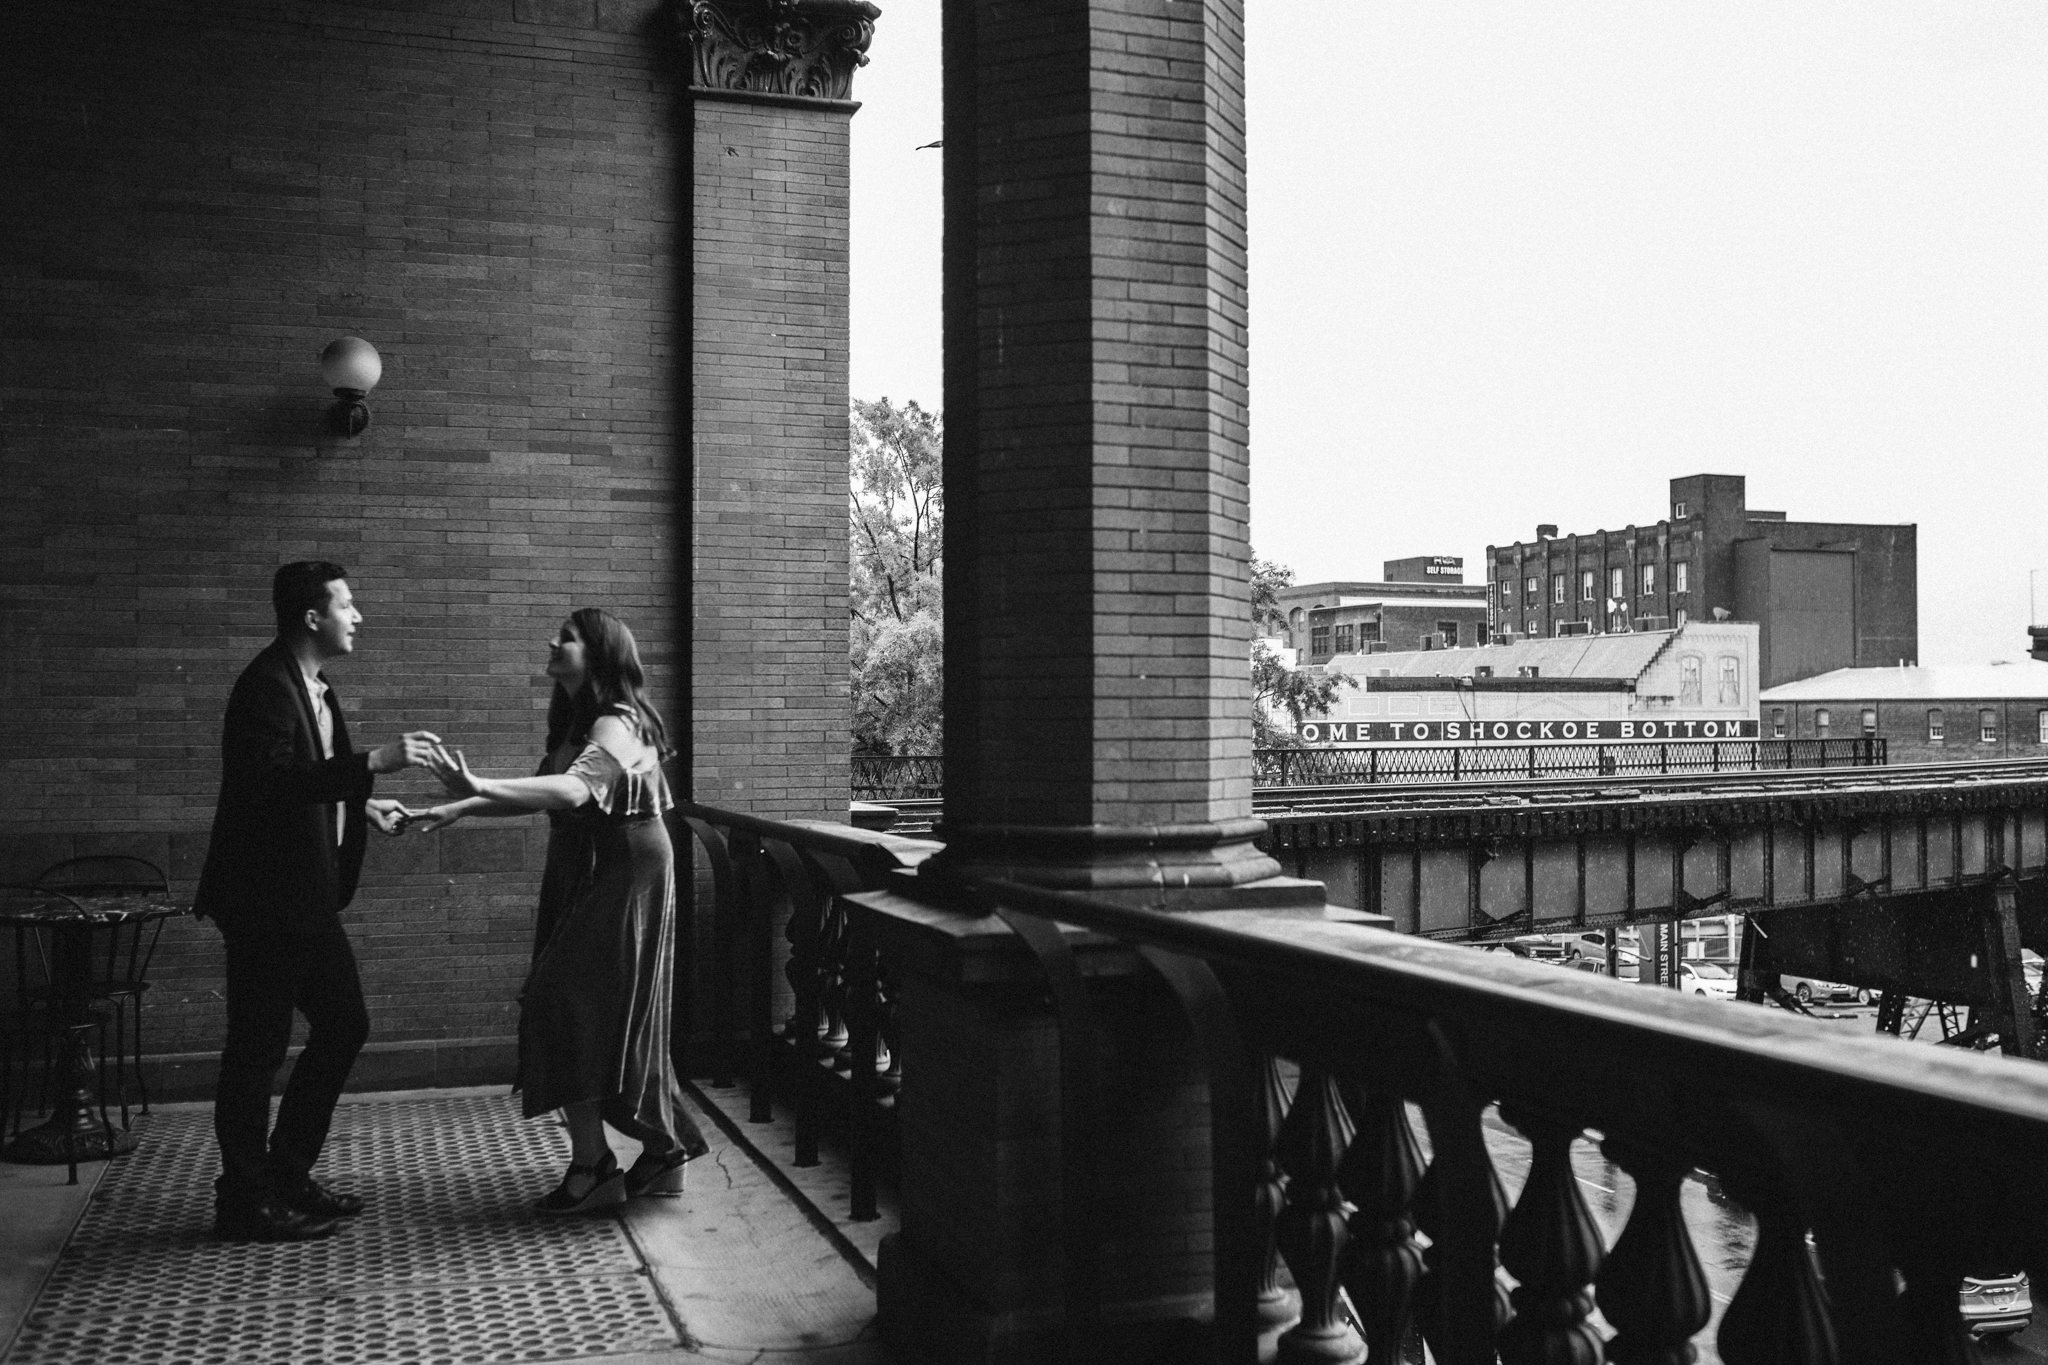 rachel_alex_richmond_engagement_session_mainstreetstation_rebeccaburtphotography-26.jpg